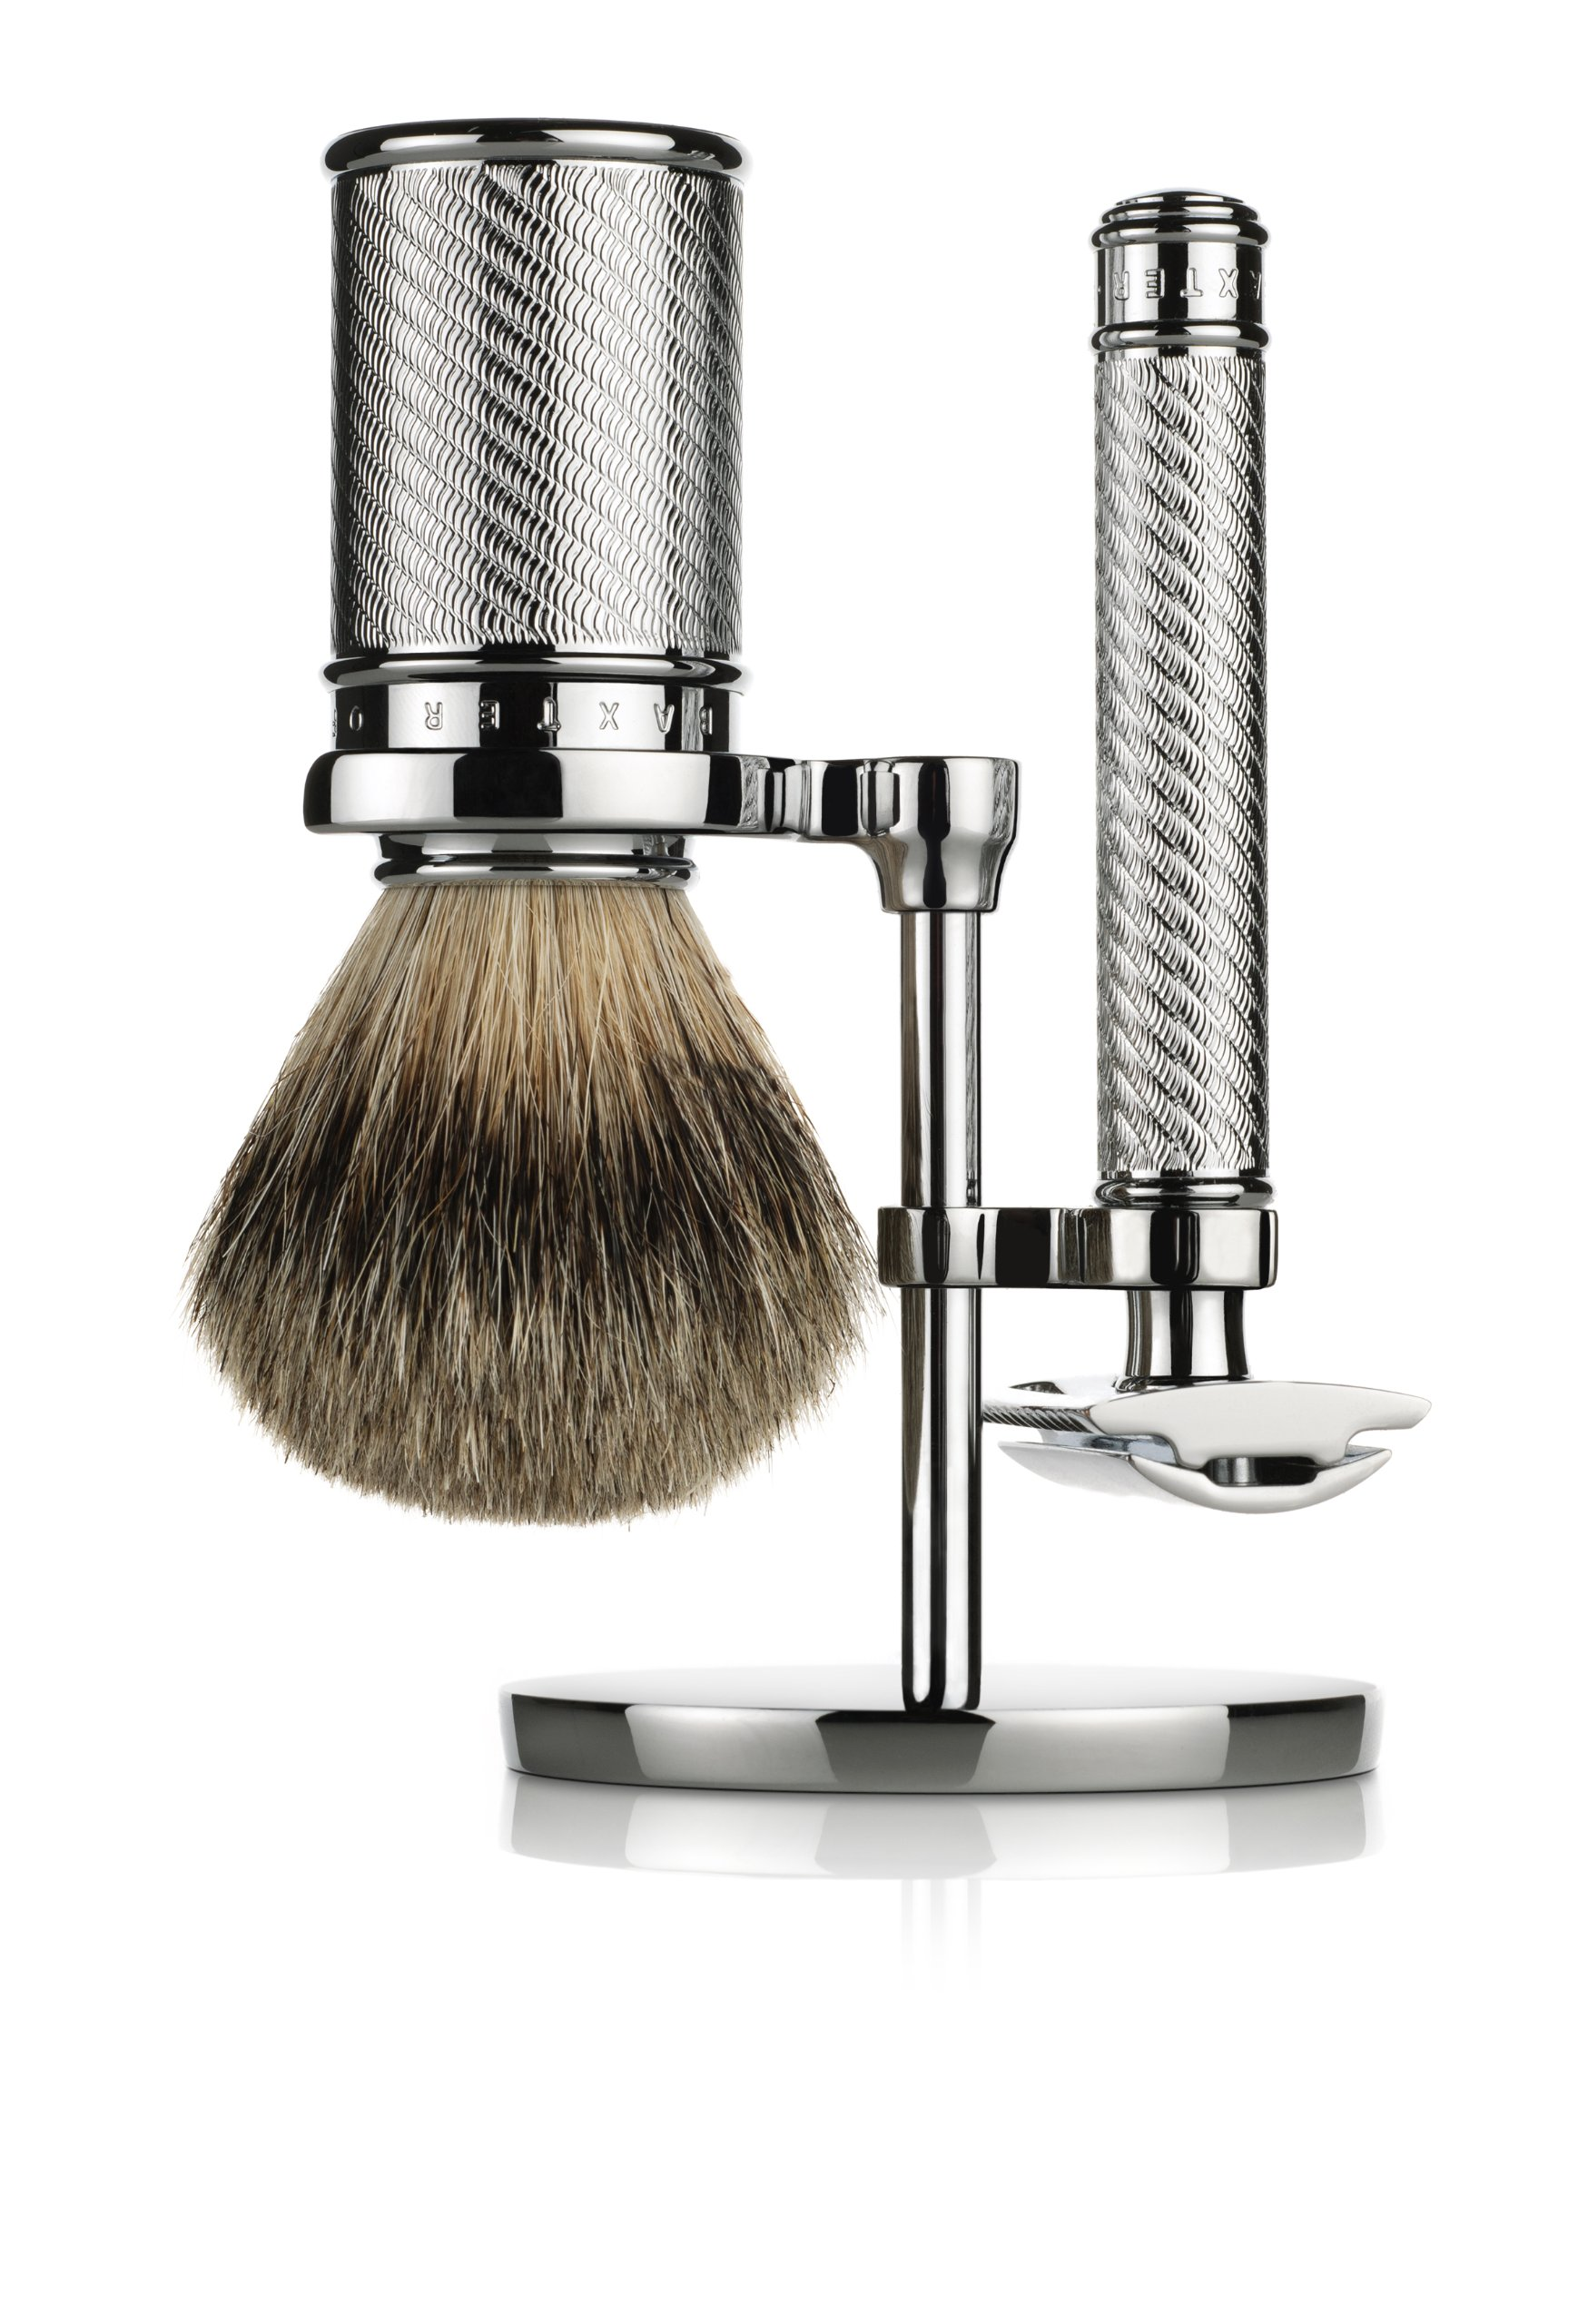 Baxter of California Double Edge Safety Razor Set for Men by Baxter of California